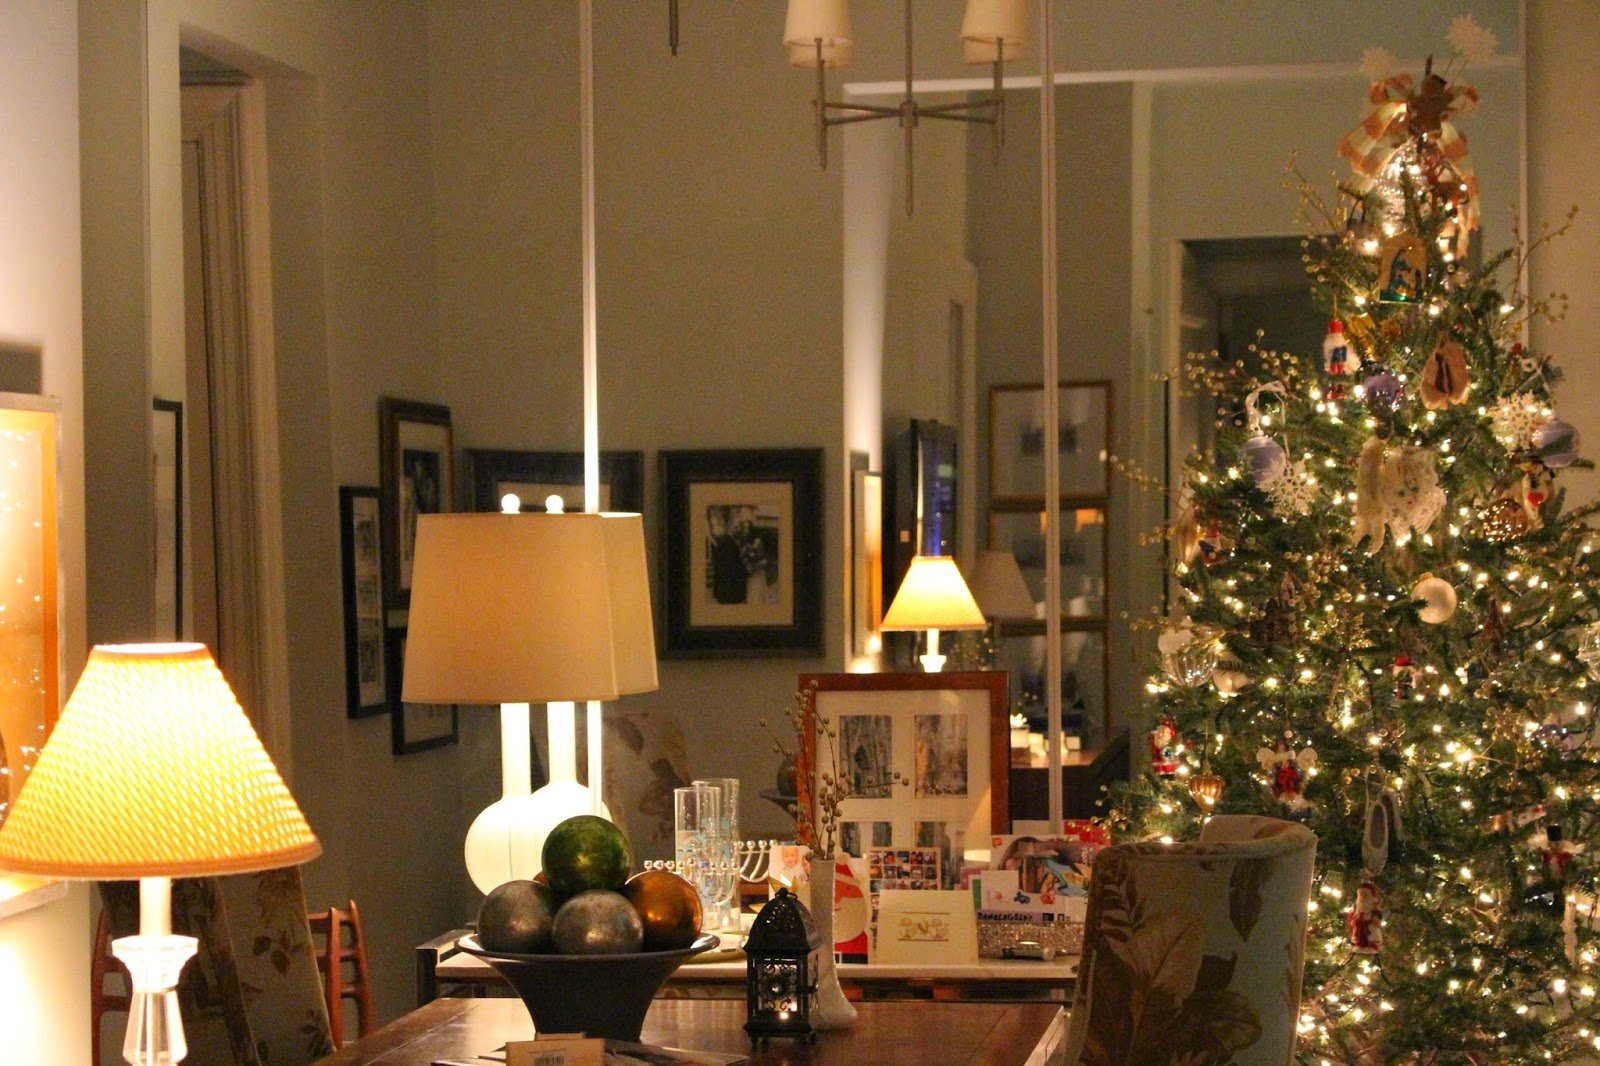 holiday decorating in small spaces my nyc apartment at christmas - Apartment Christmas Decorating Ideas